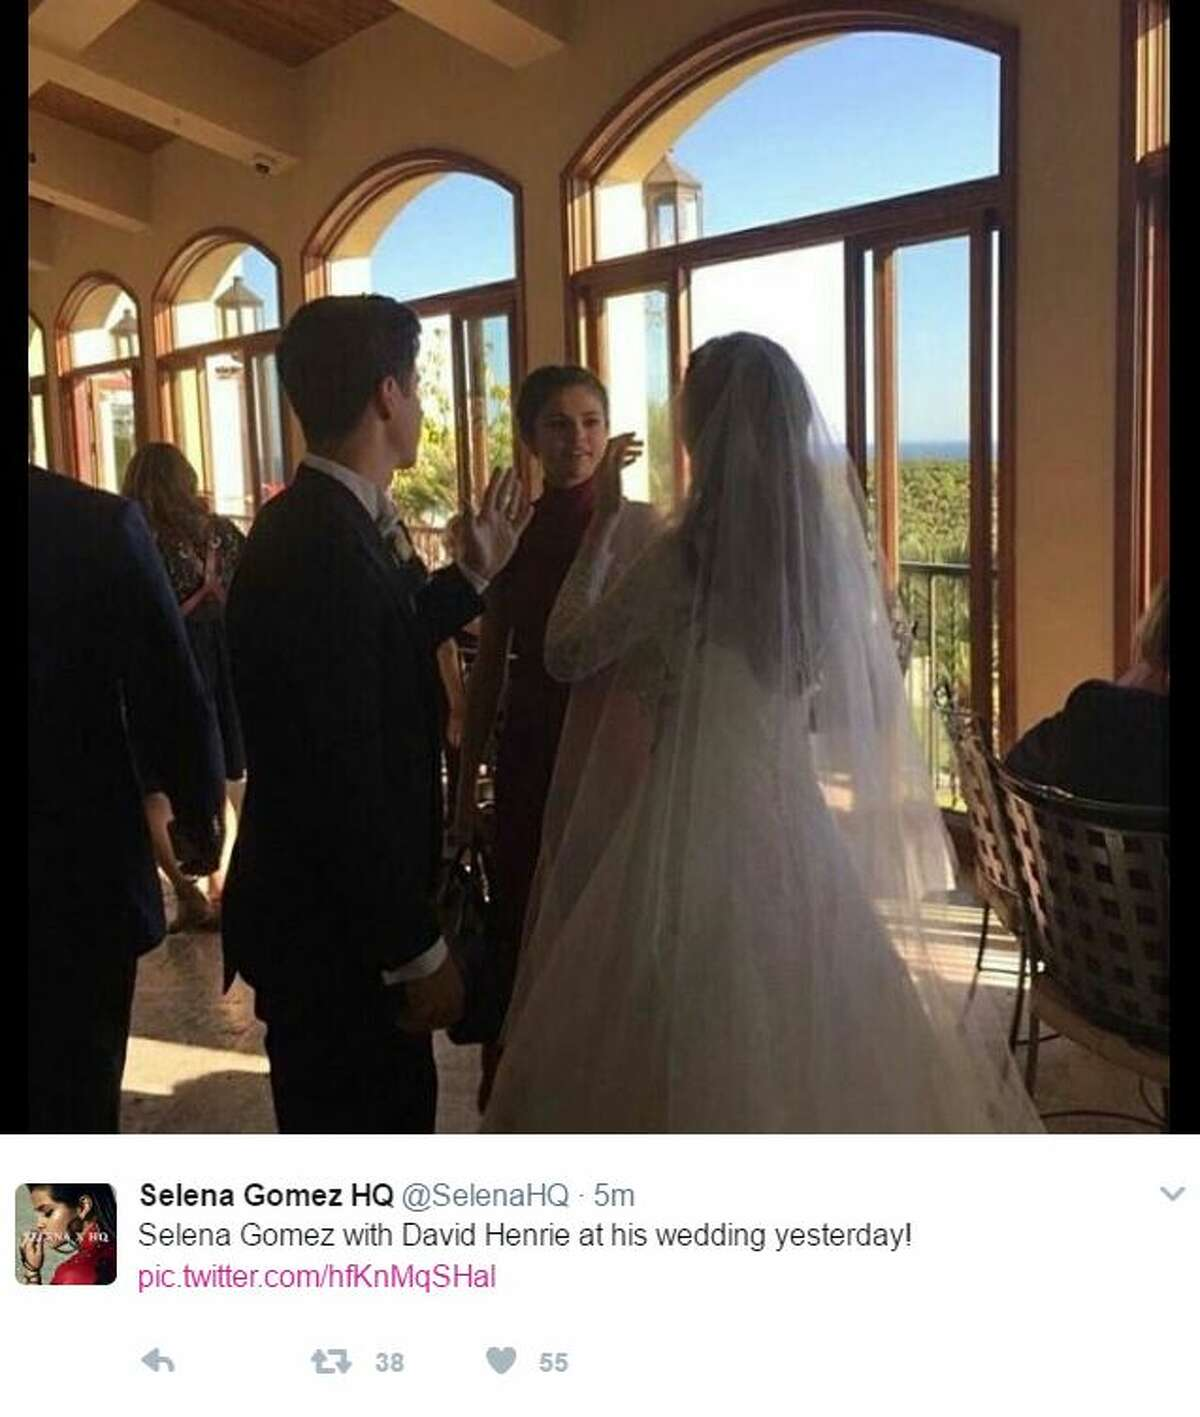 Twitter user @SelenaHQ posted this photo of Selena Gomez attending David Henrie and Maria Cahill's wedding on Friday, April 21, 2017.